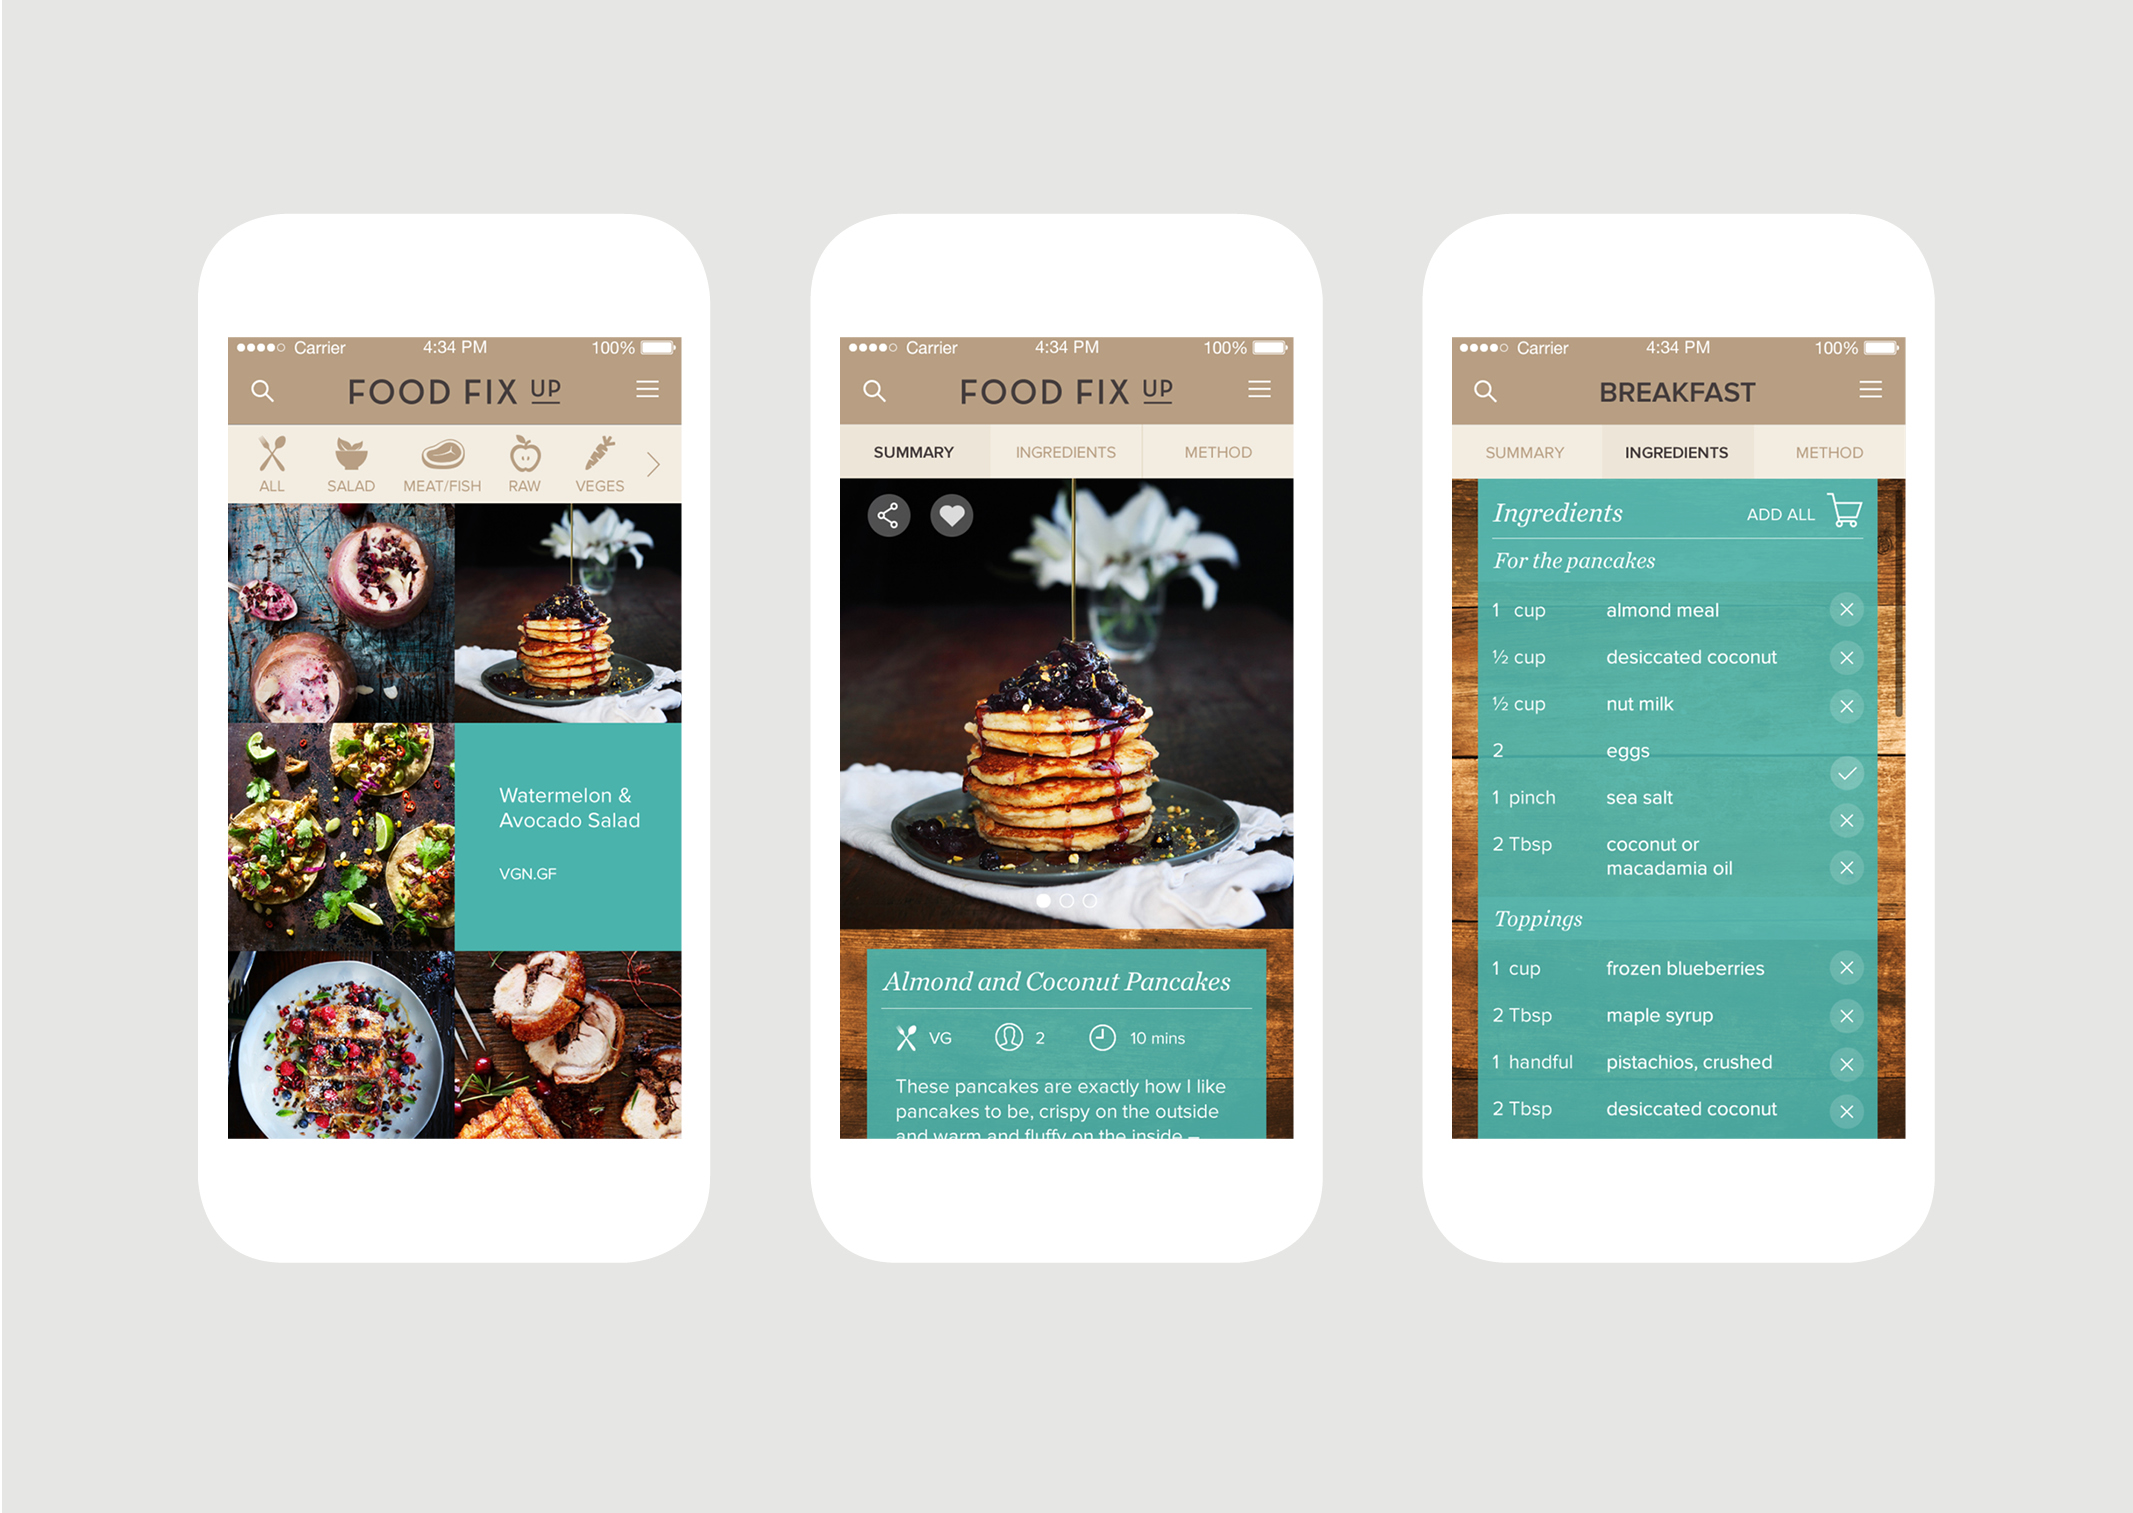 Food Fix Up App Recipe screens features delicious food photography summary and ingredients